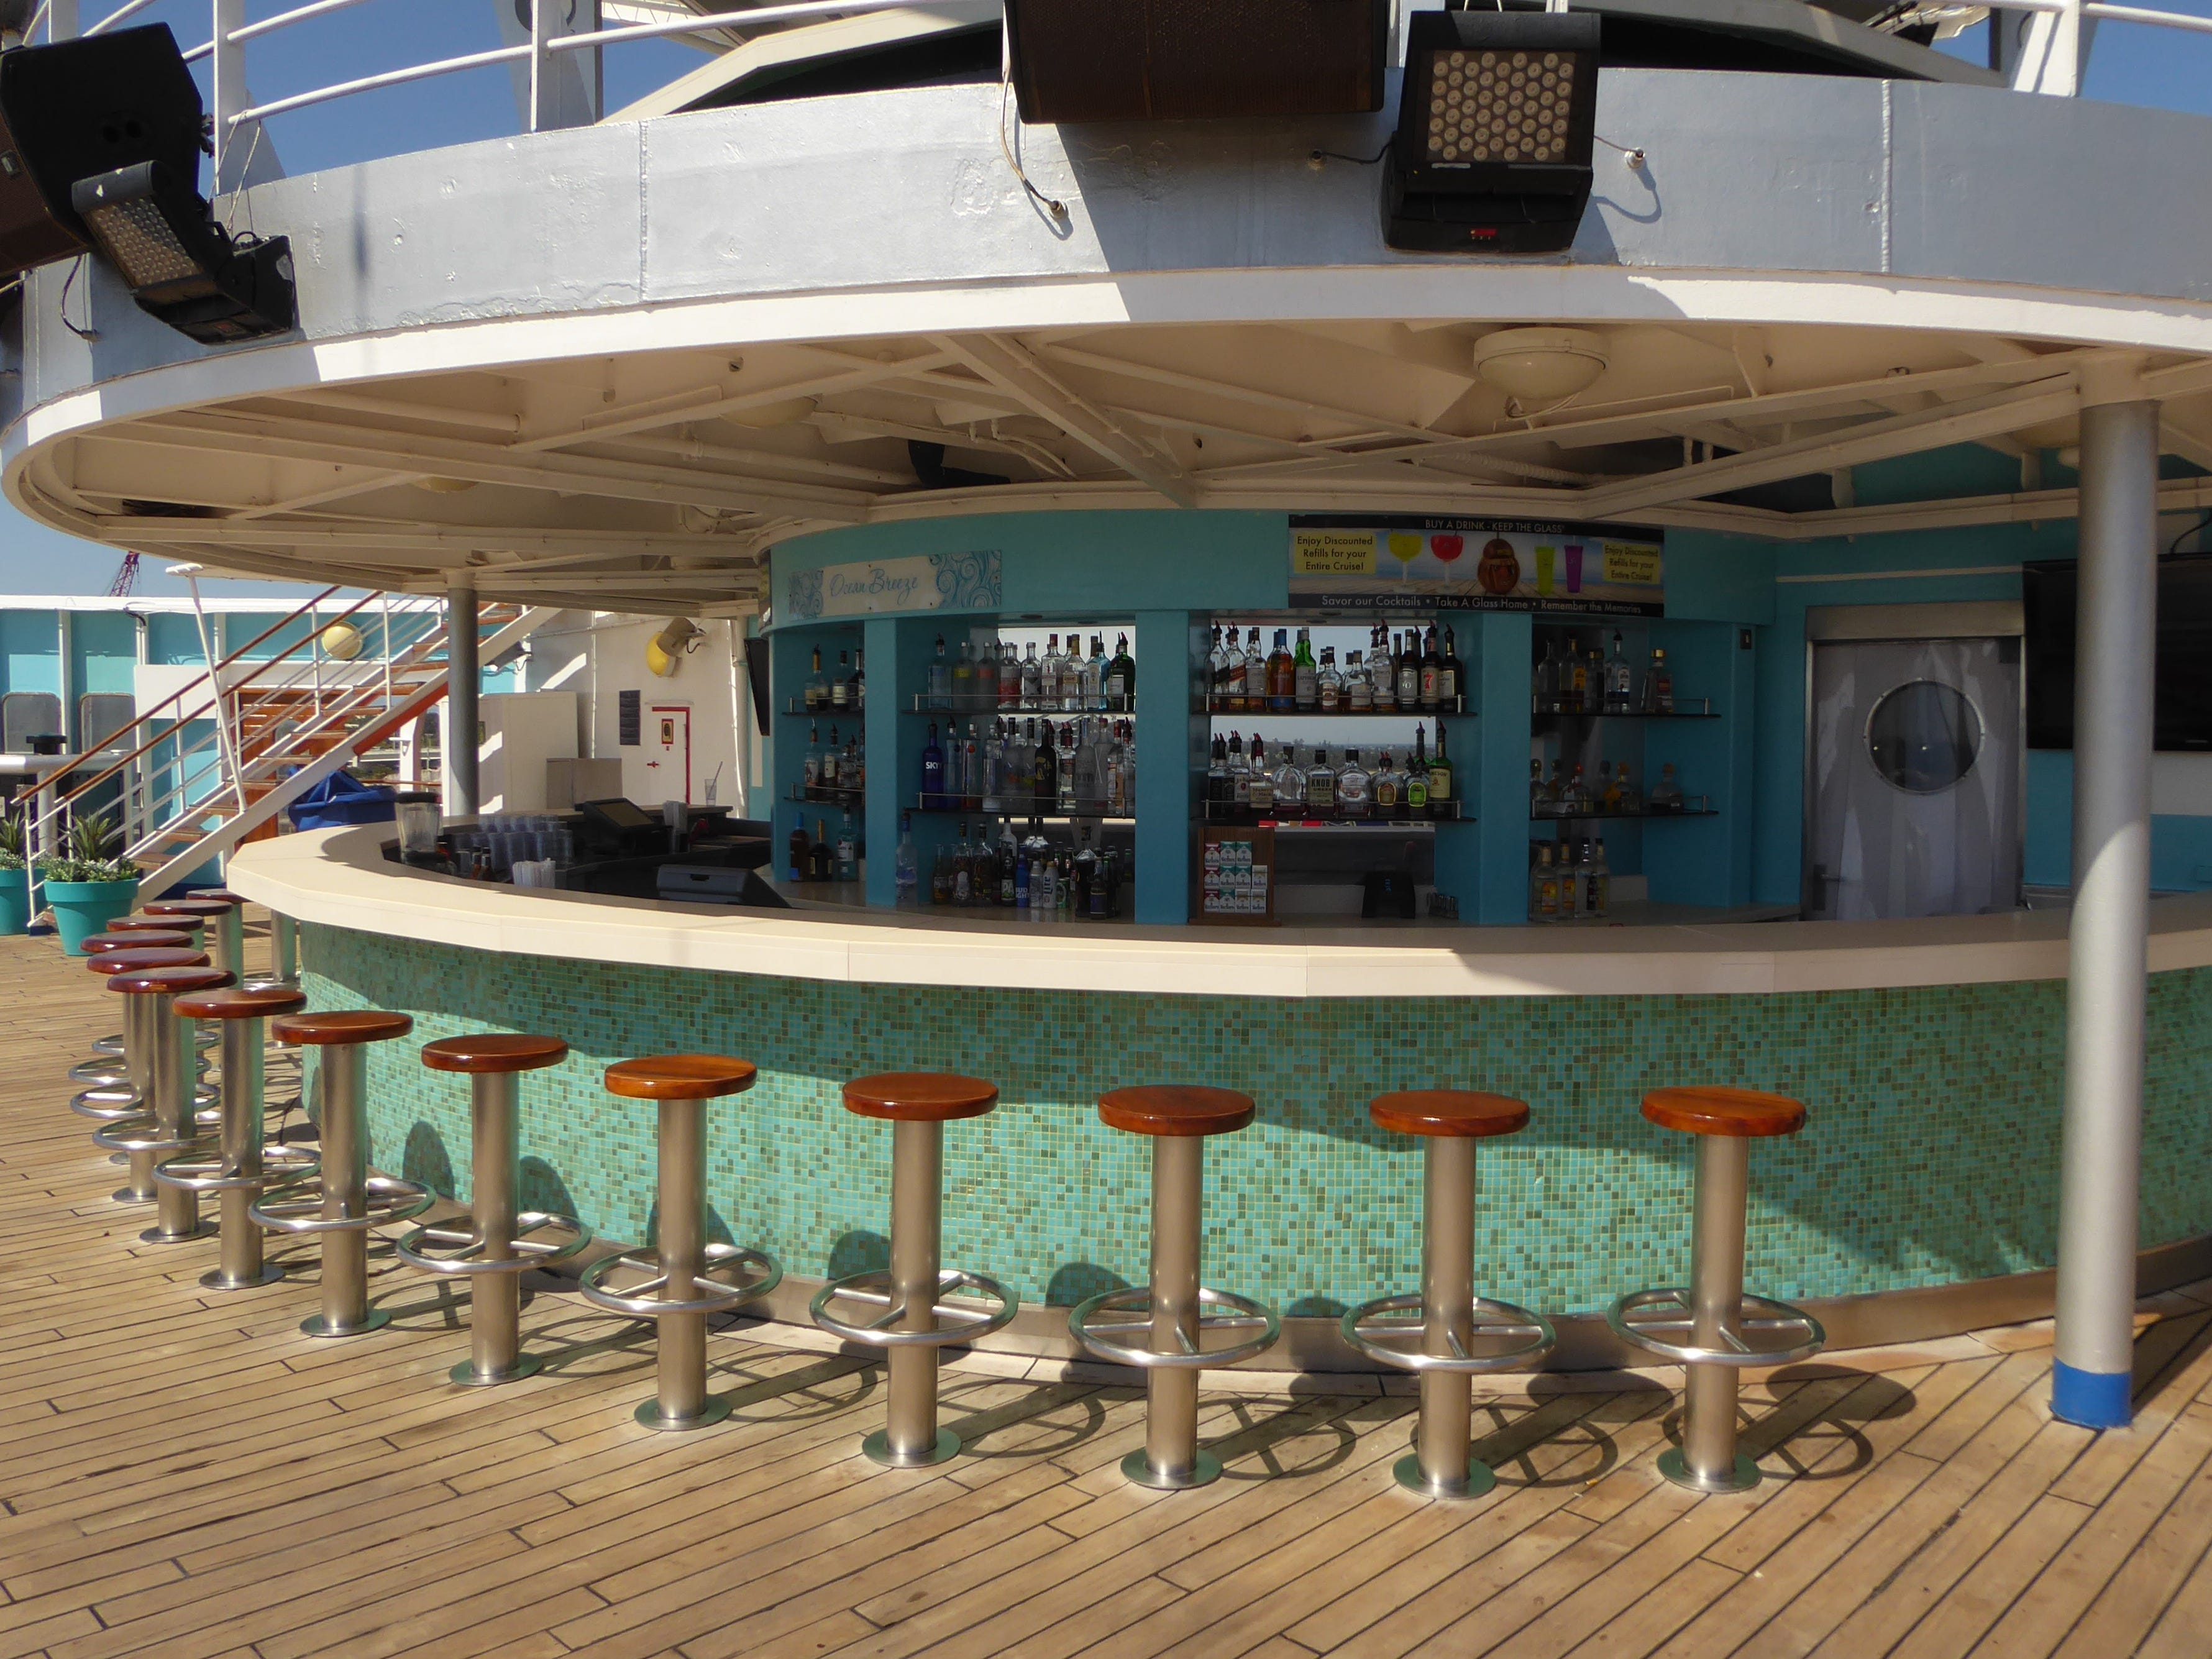 Named for a classic former ocean liner that used to sail between Florida and the Bahamas, the Ocean Breeze Bar serves the aft portion of Luna Deck.